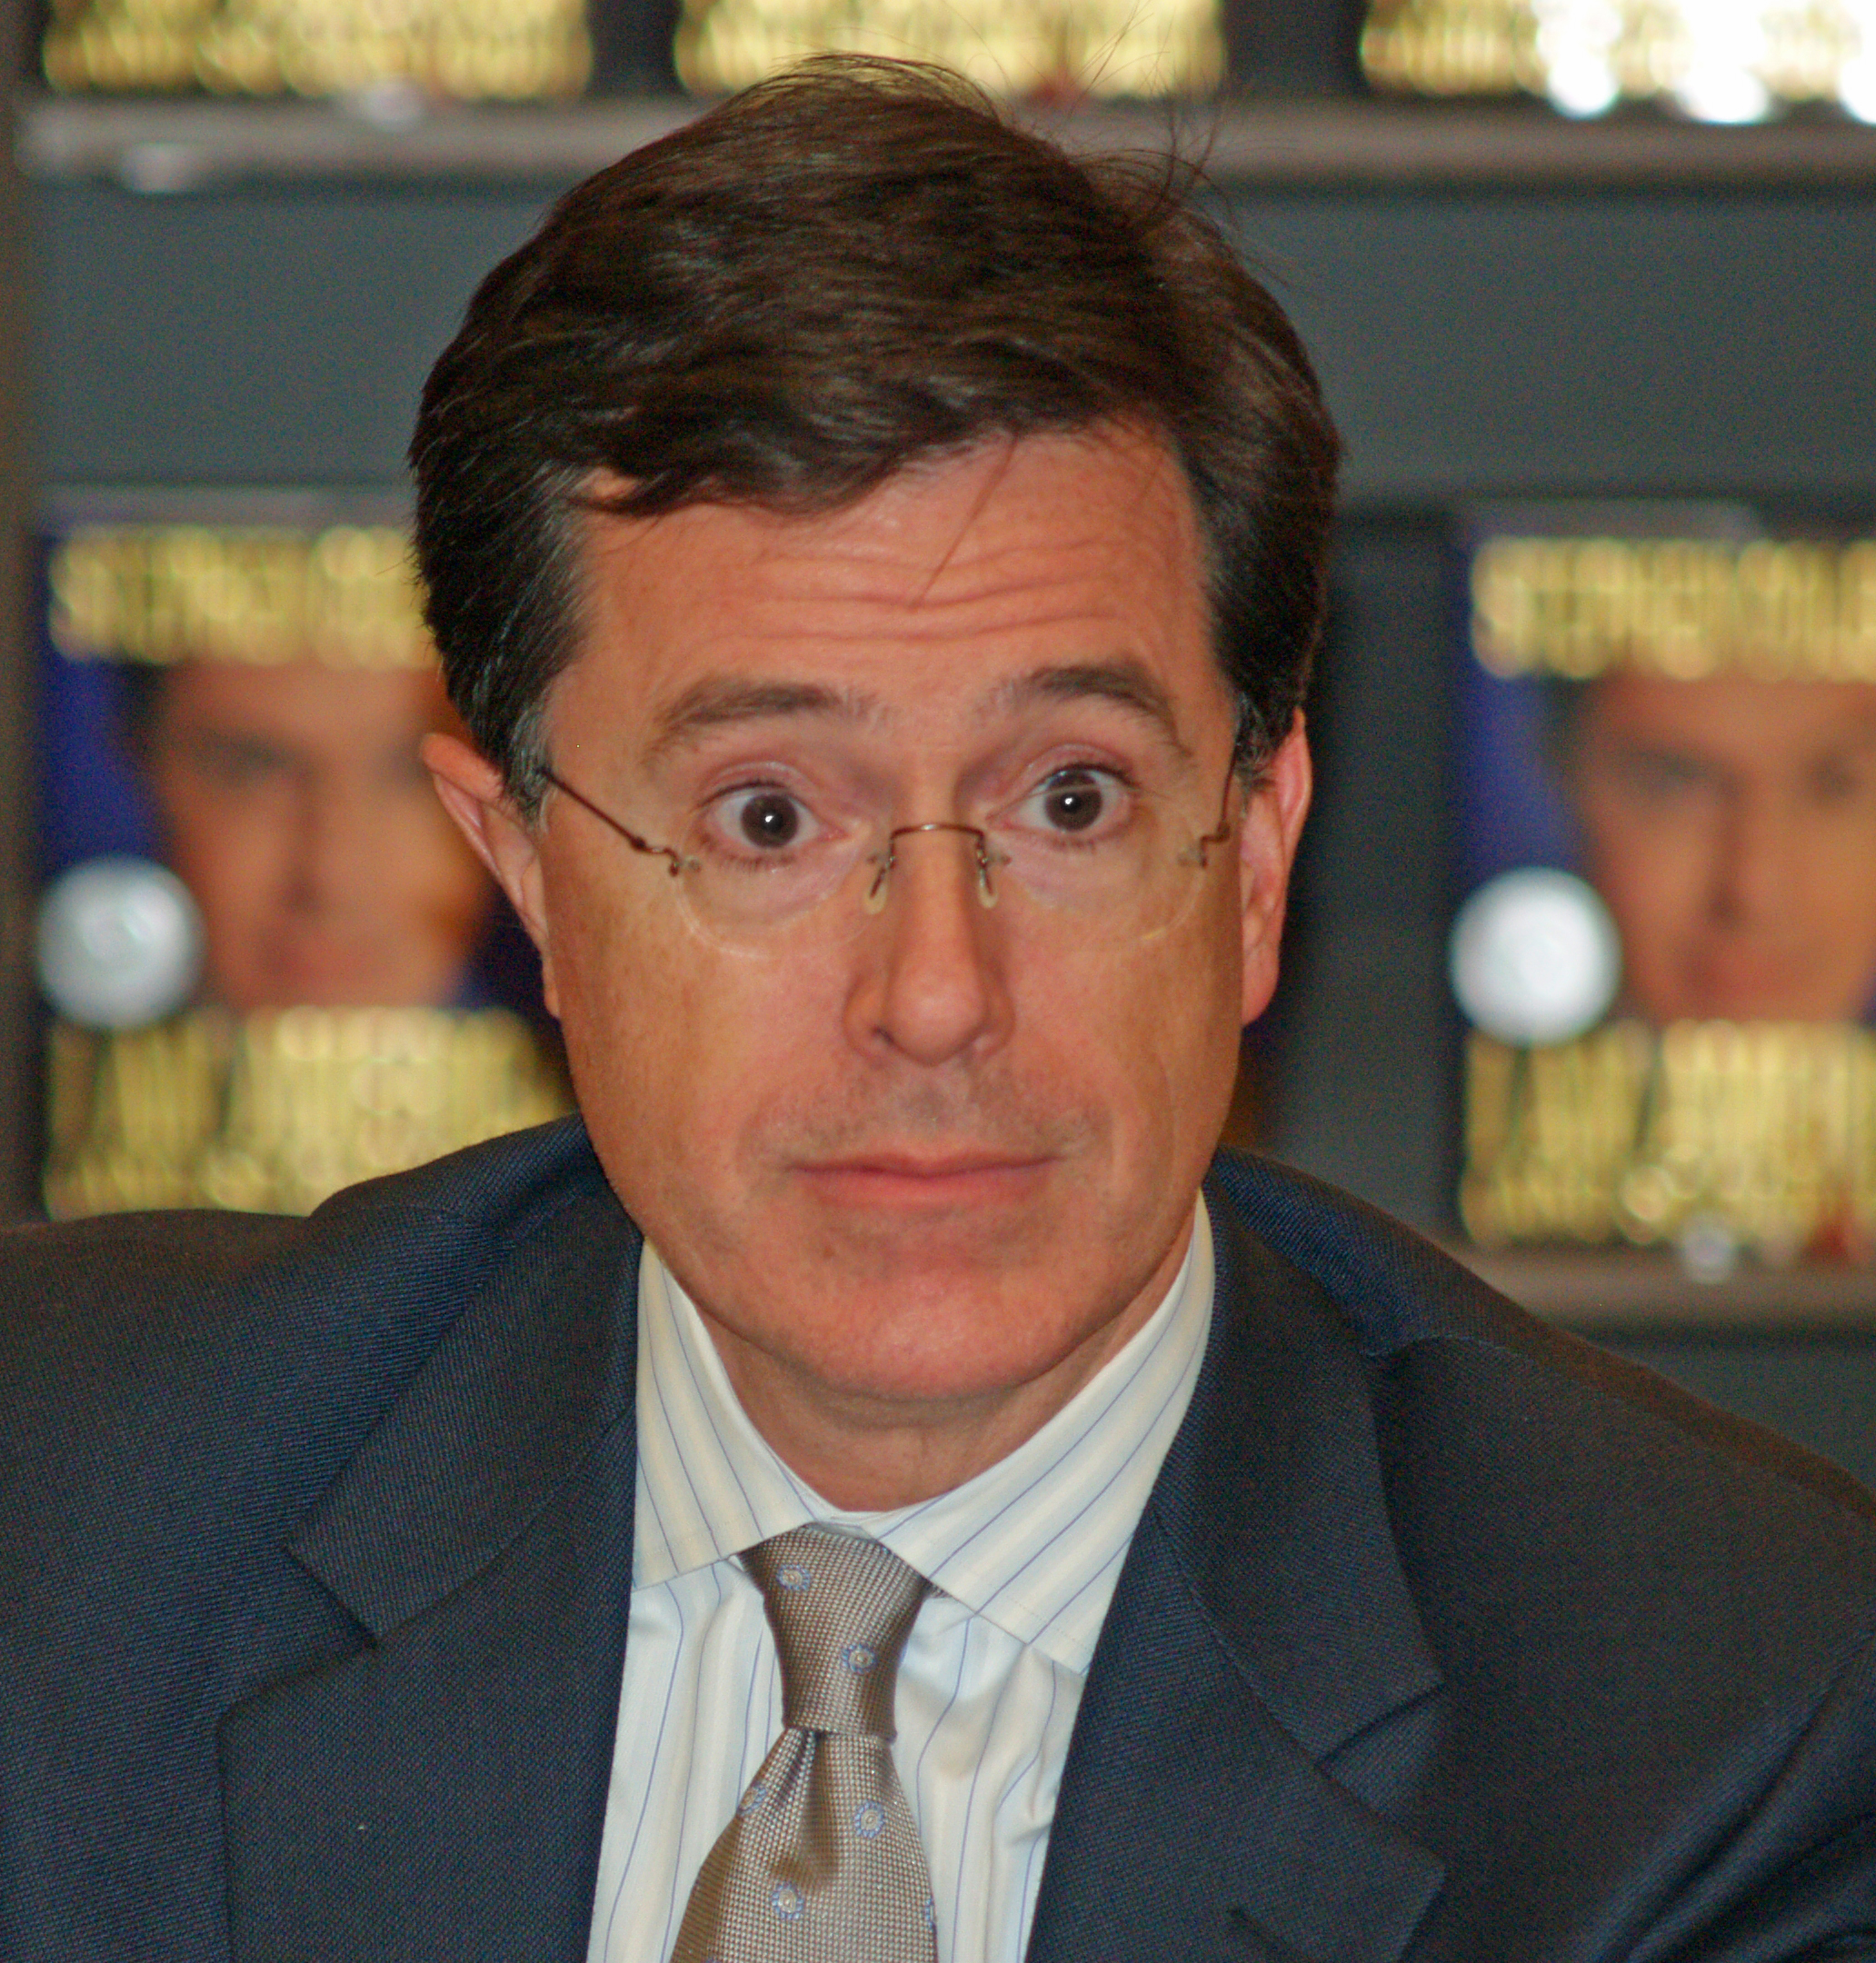 File:STEPHEN COLBERT 2 by David Shankbone.jpg - Wikimedia Commons